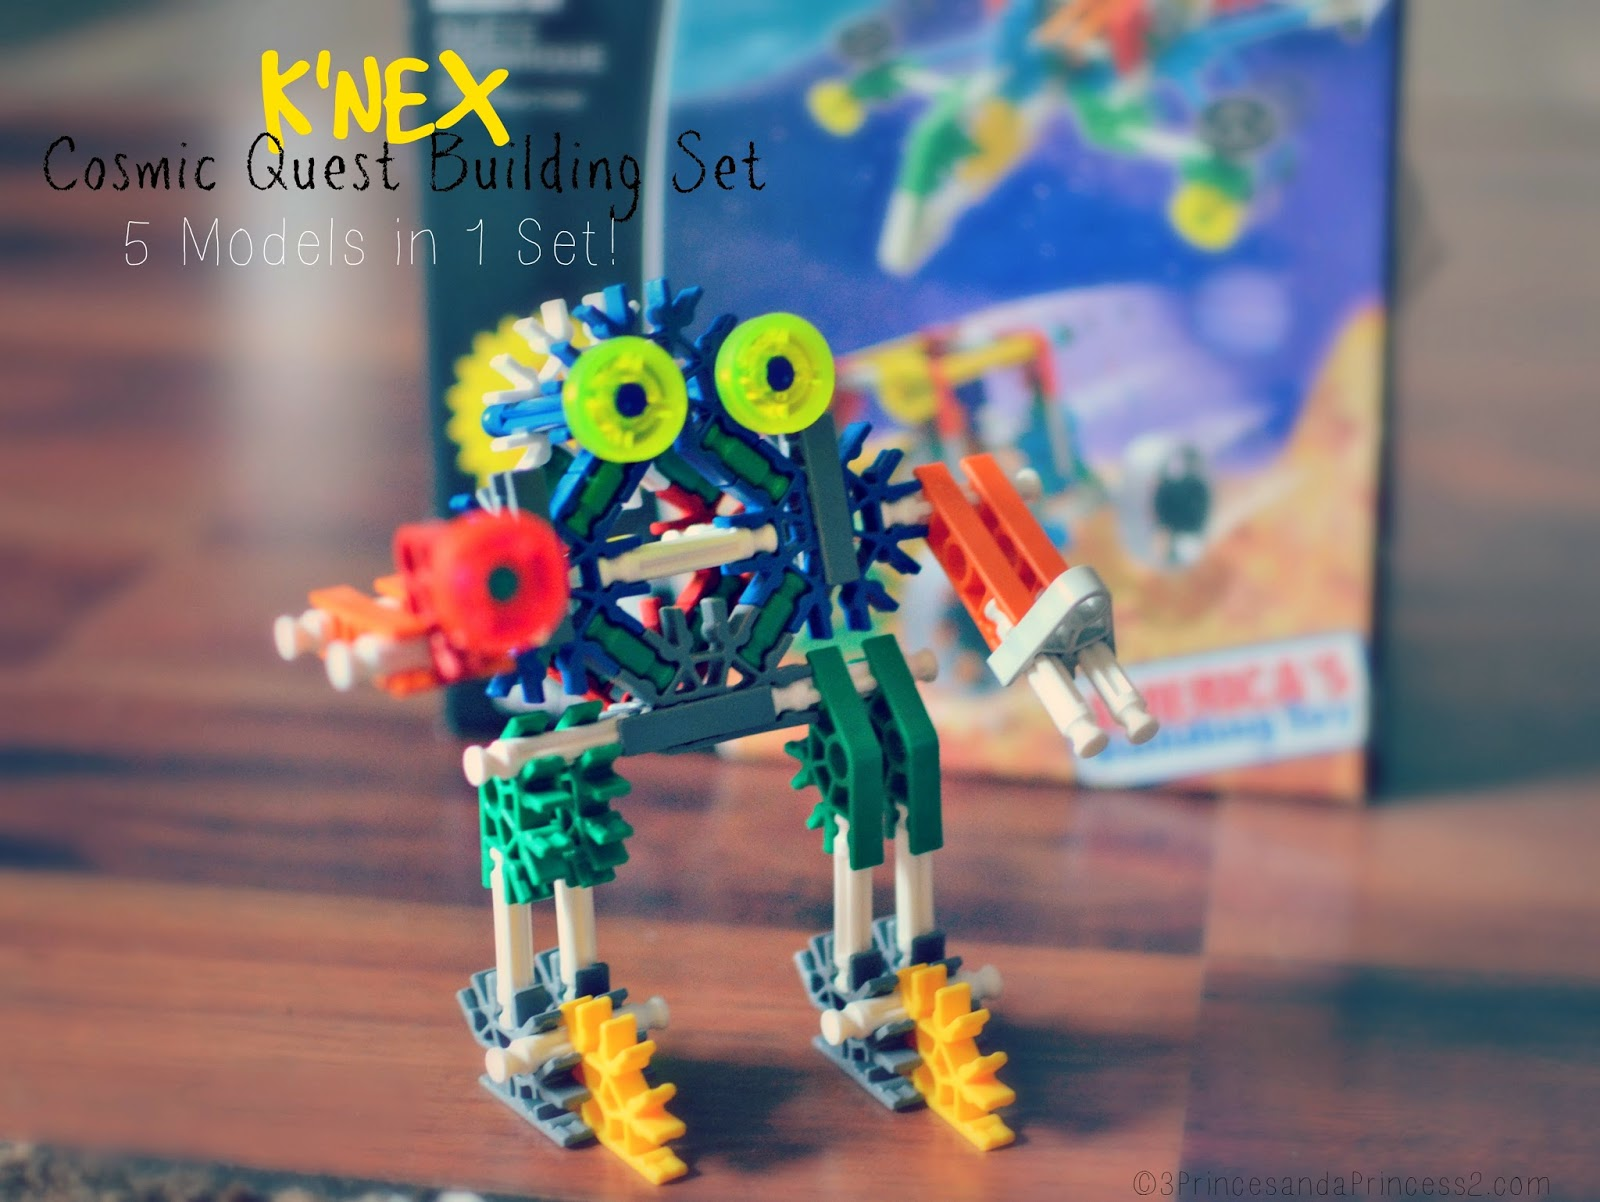 Cosmic Quest Building Set from KNEX